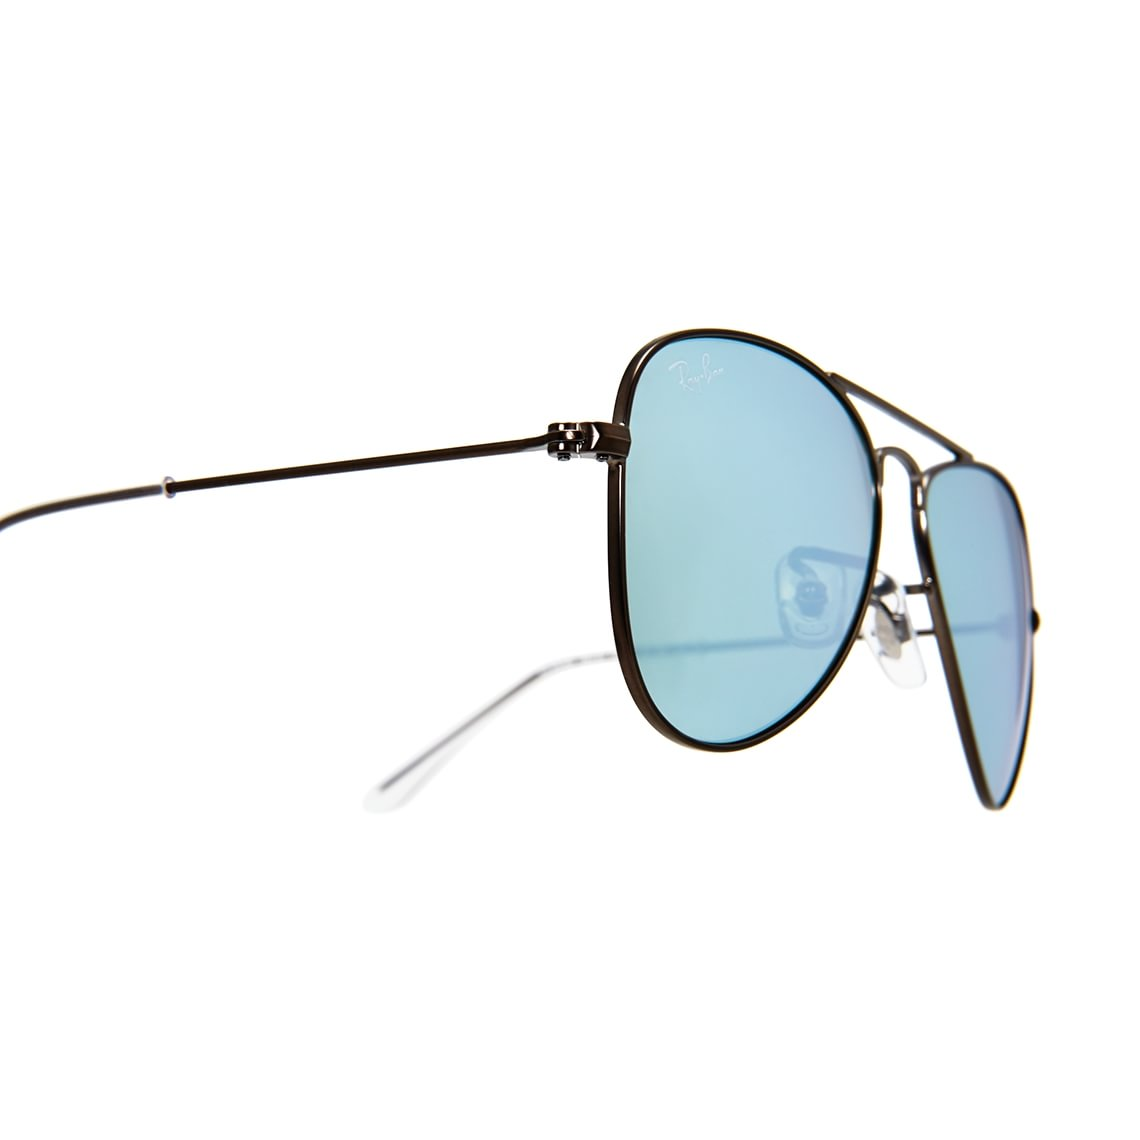 Ray-Ban Junior RJ9506S 250/30 5013